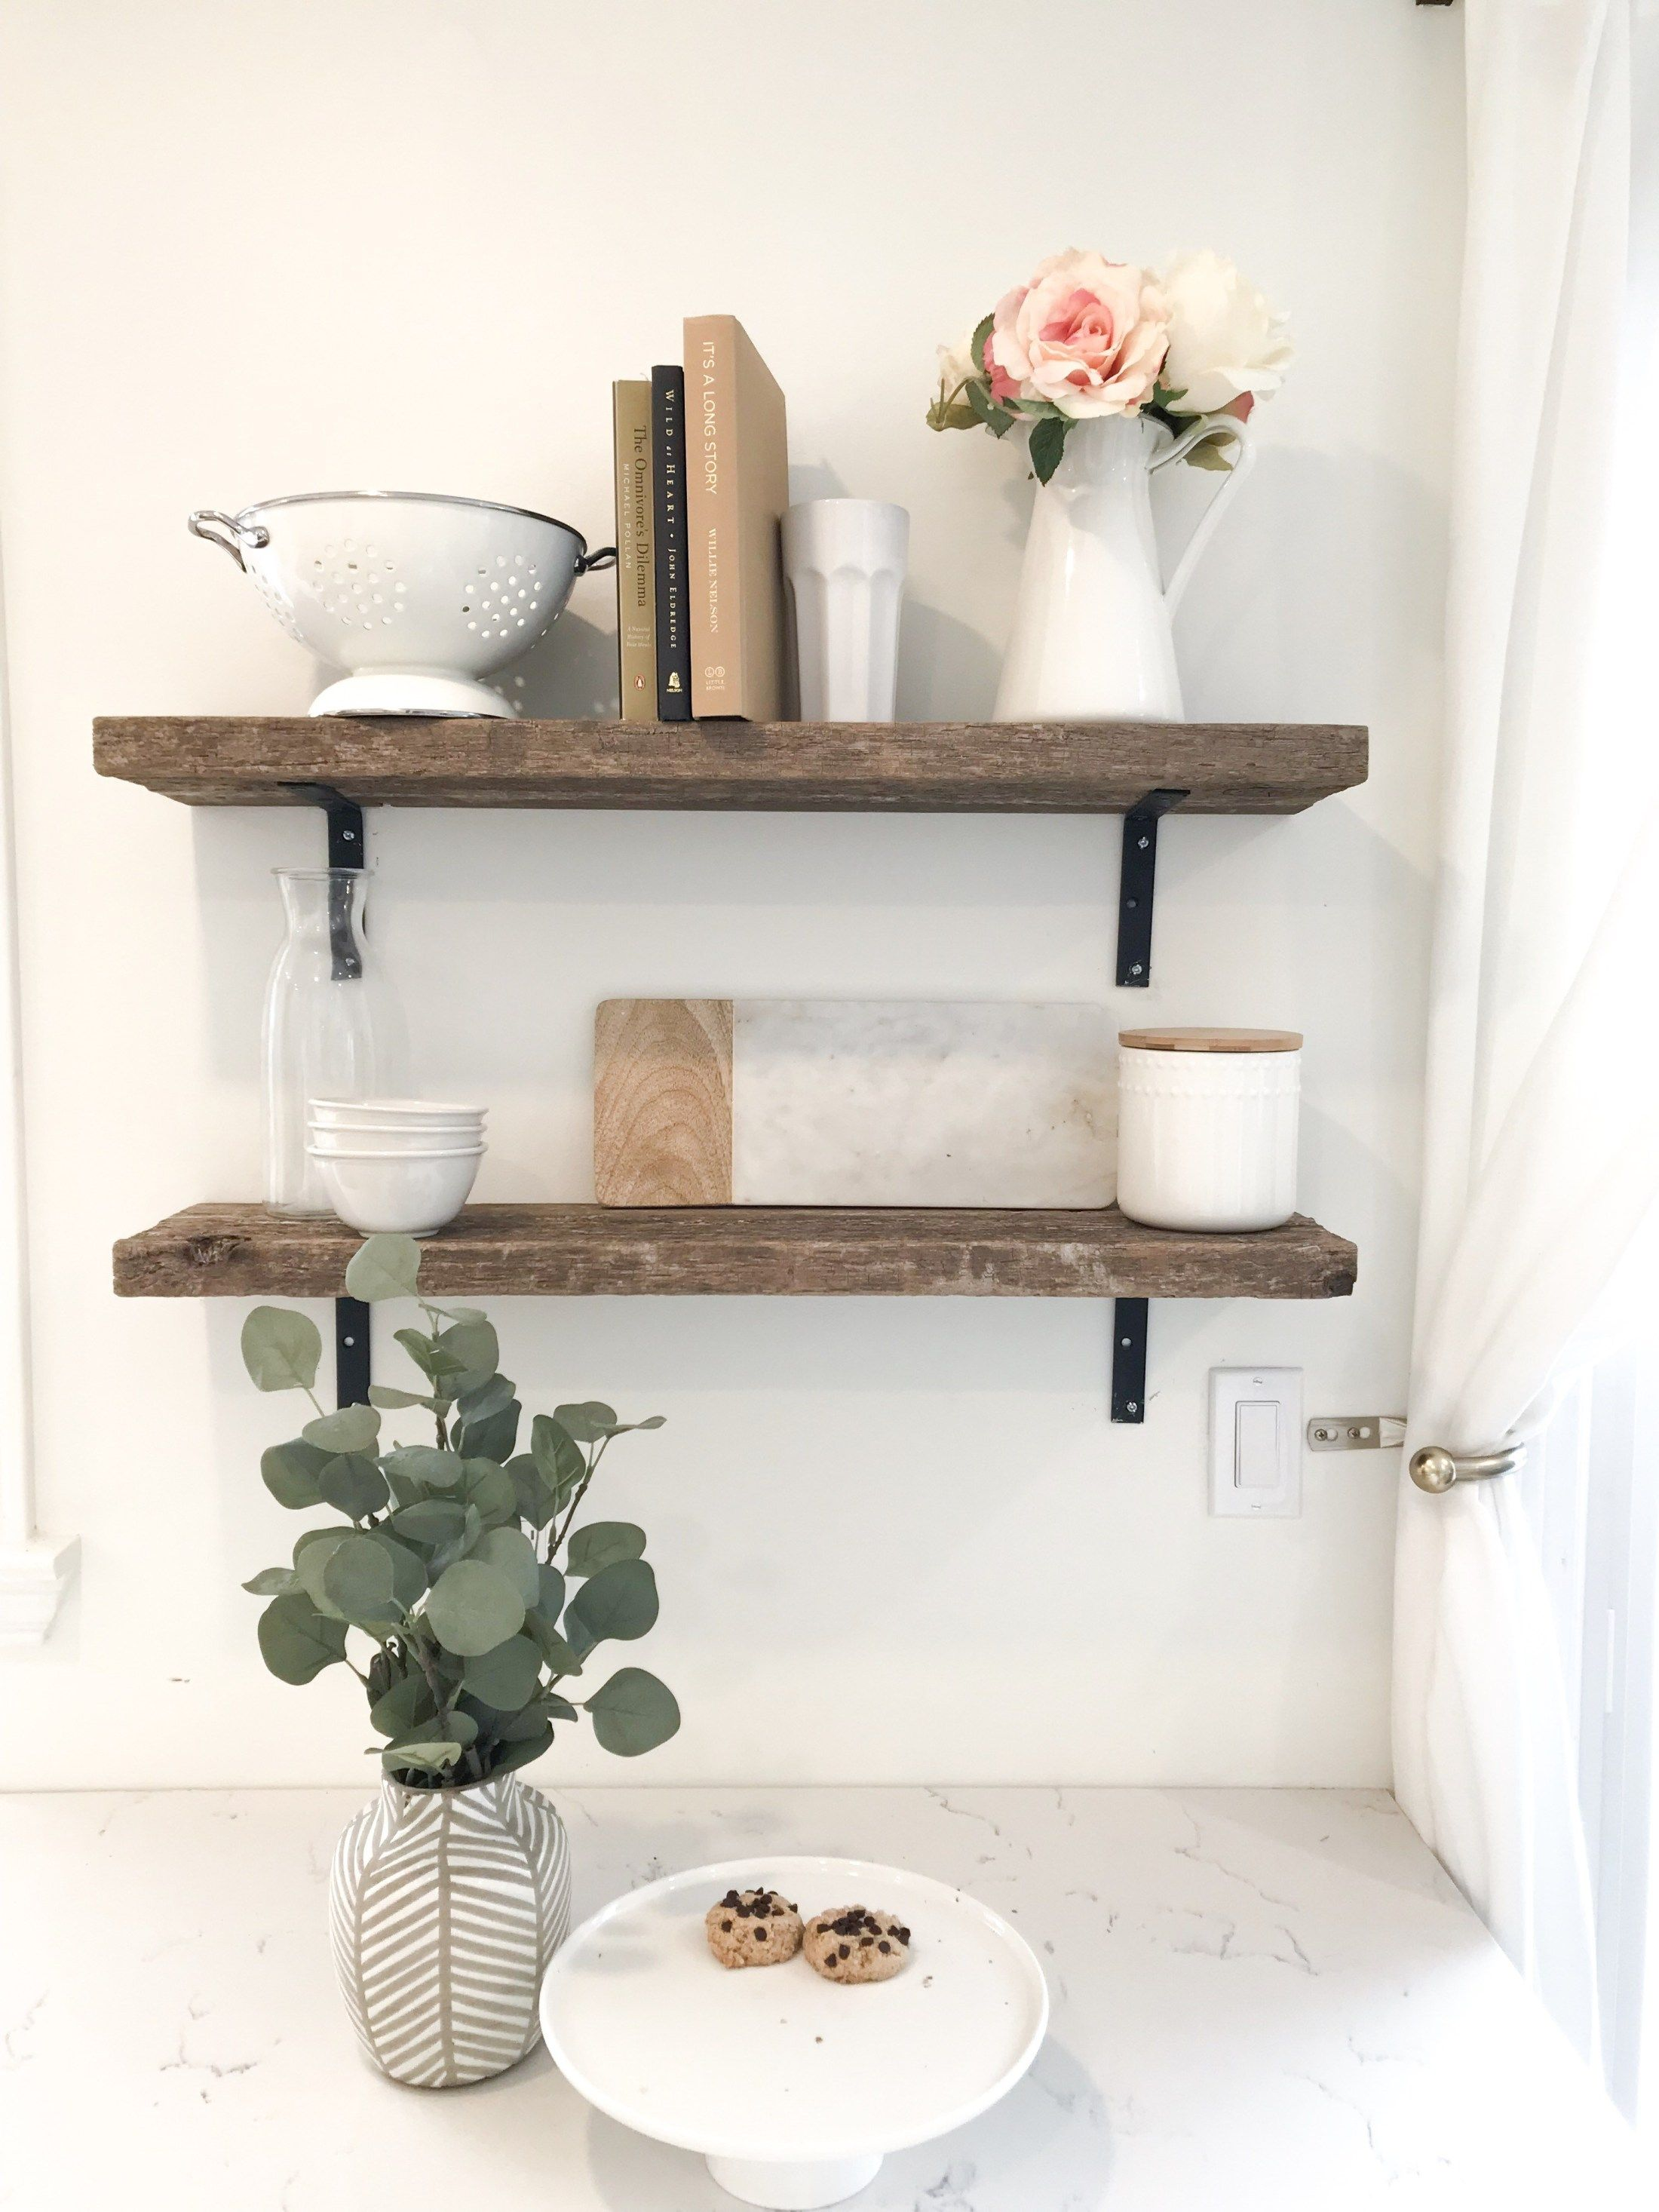 DIY Rustic Open Farmhouse Shelves (With images) Kitchen